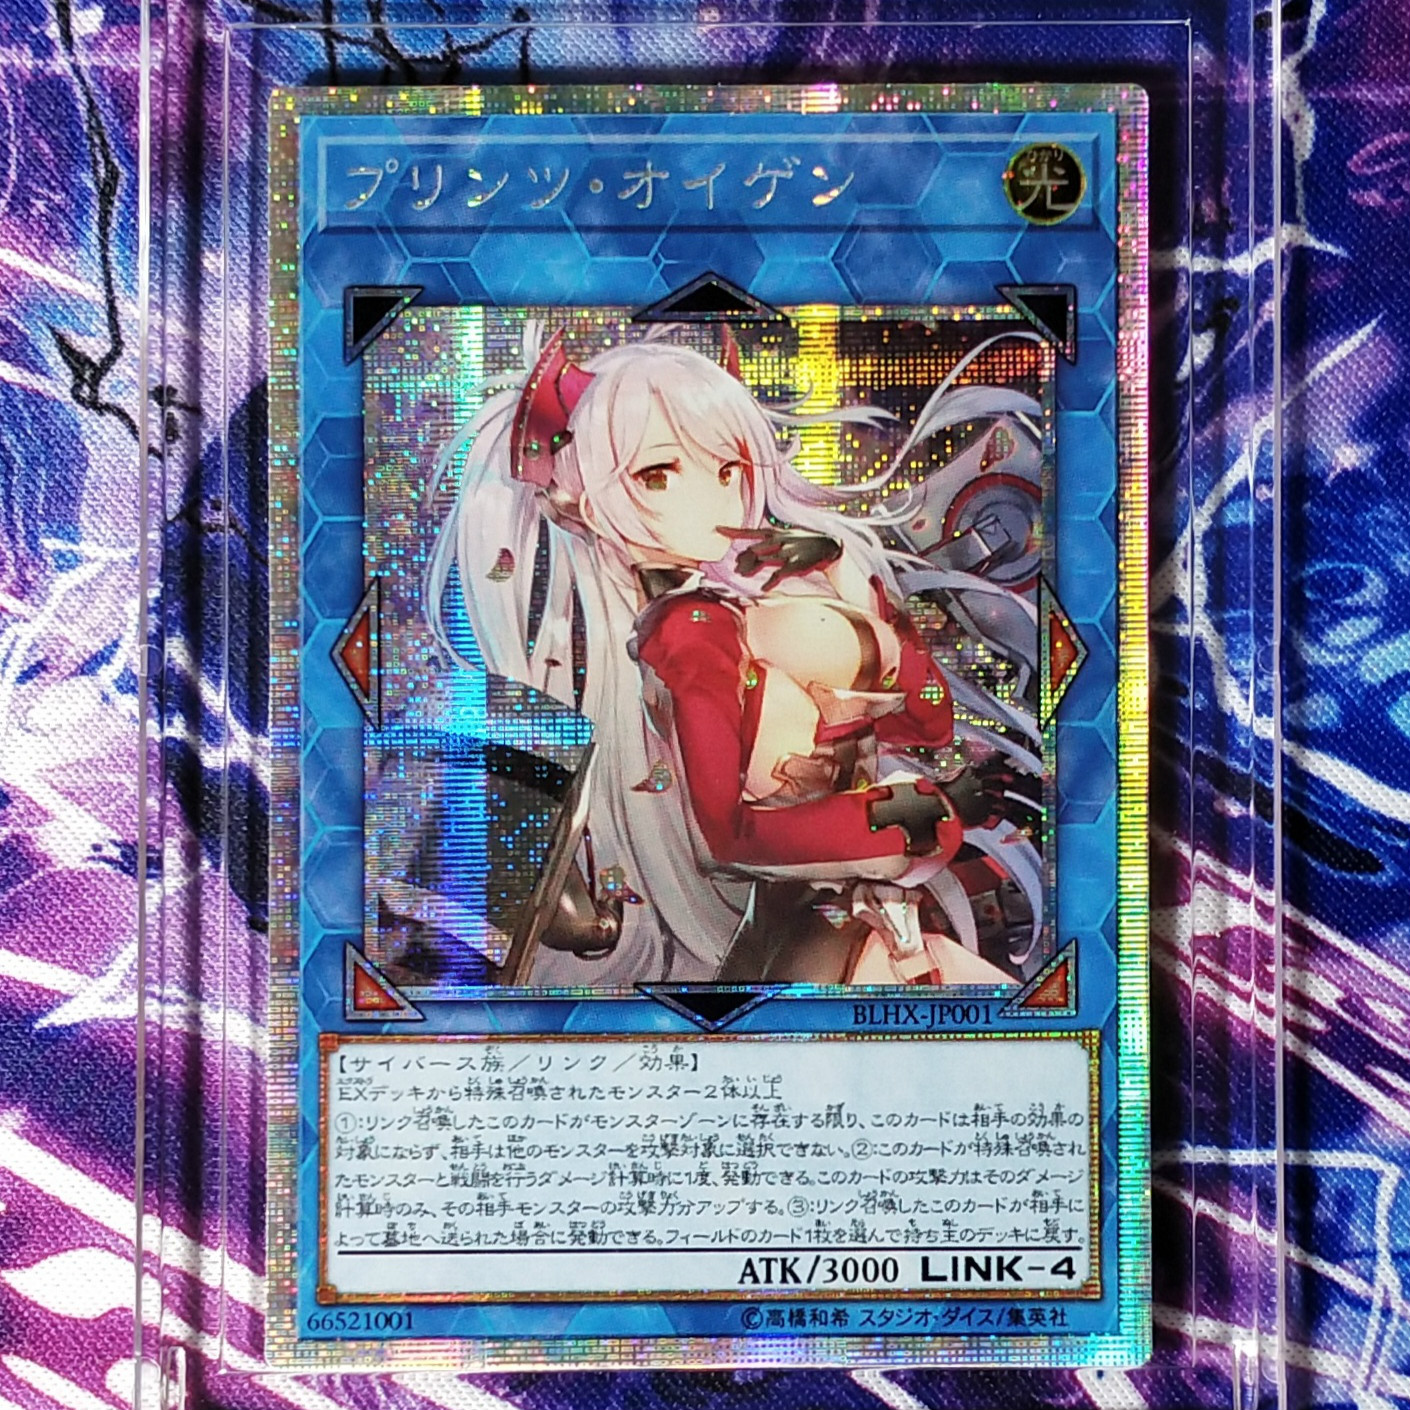 Azur Lane Prinz Eugen Yu Gi Oh  DIY Colorful Toys Hobbies Hobby Collectibles Game Collection Anime Cards